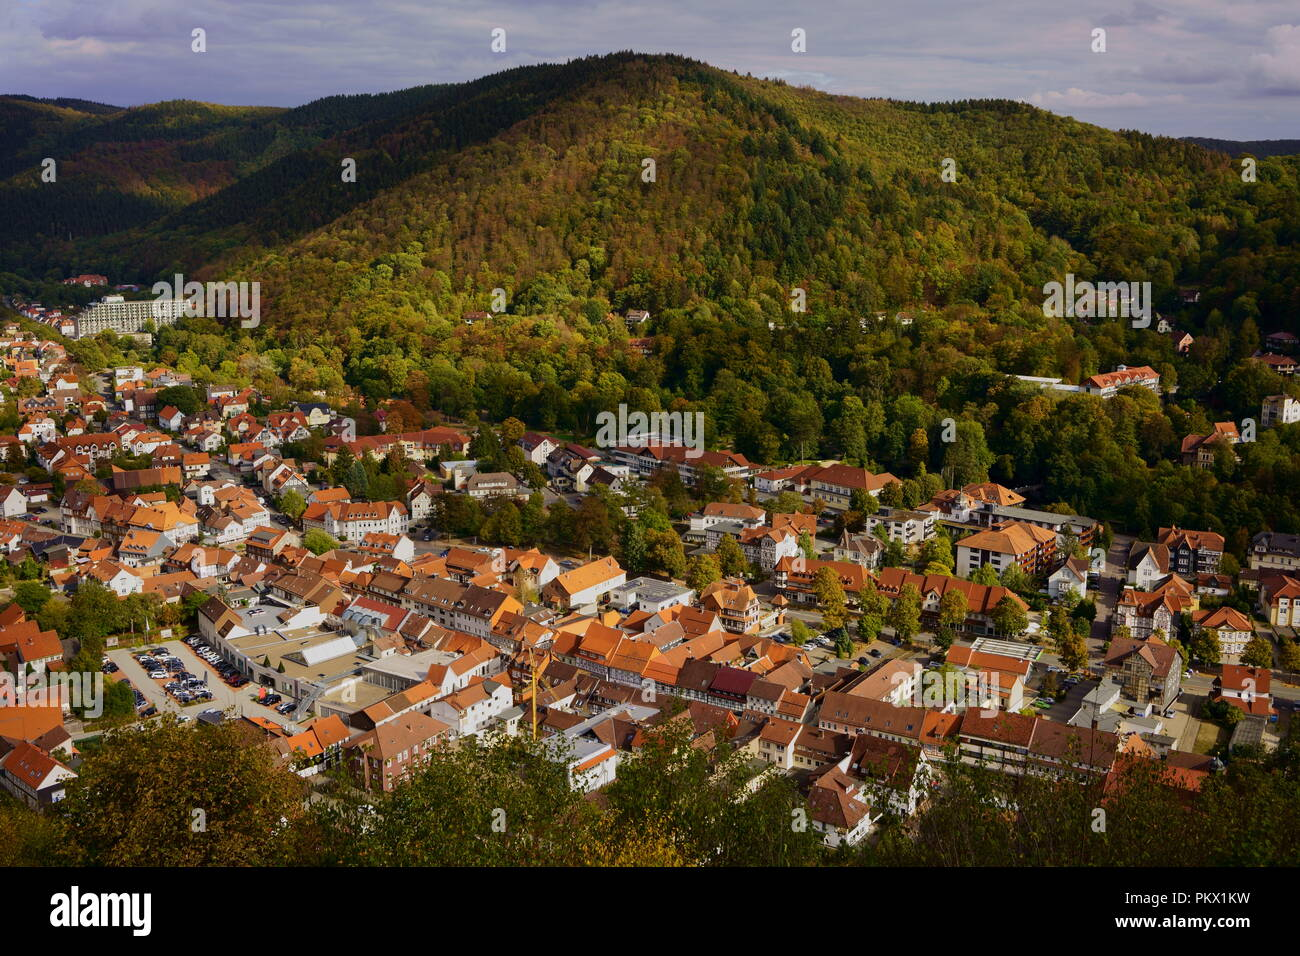 Townscape of Bad Lauterberg in the Harz mountains, Lower Saxony, Germany. Picturesque half-timbered houses in the southern Harz region. - Stock Image